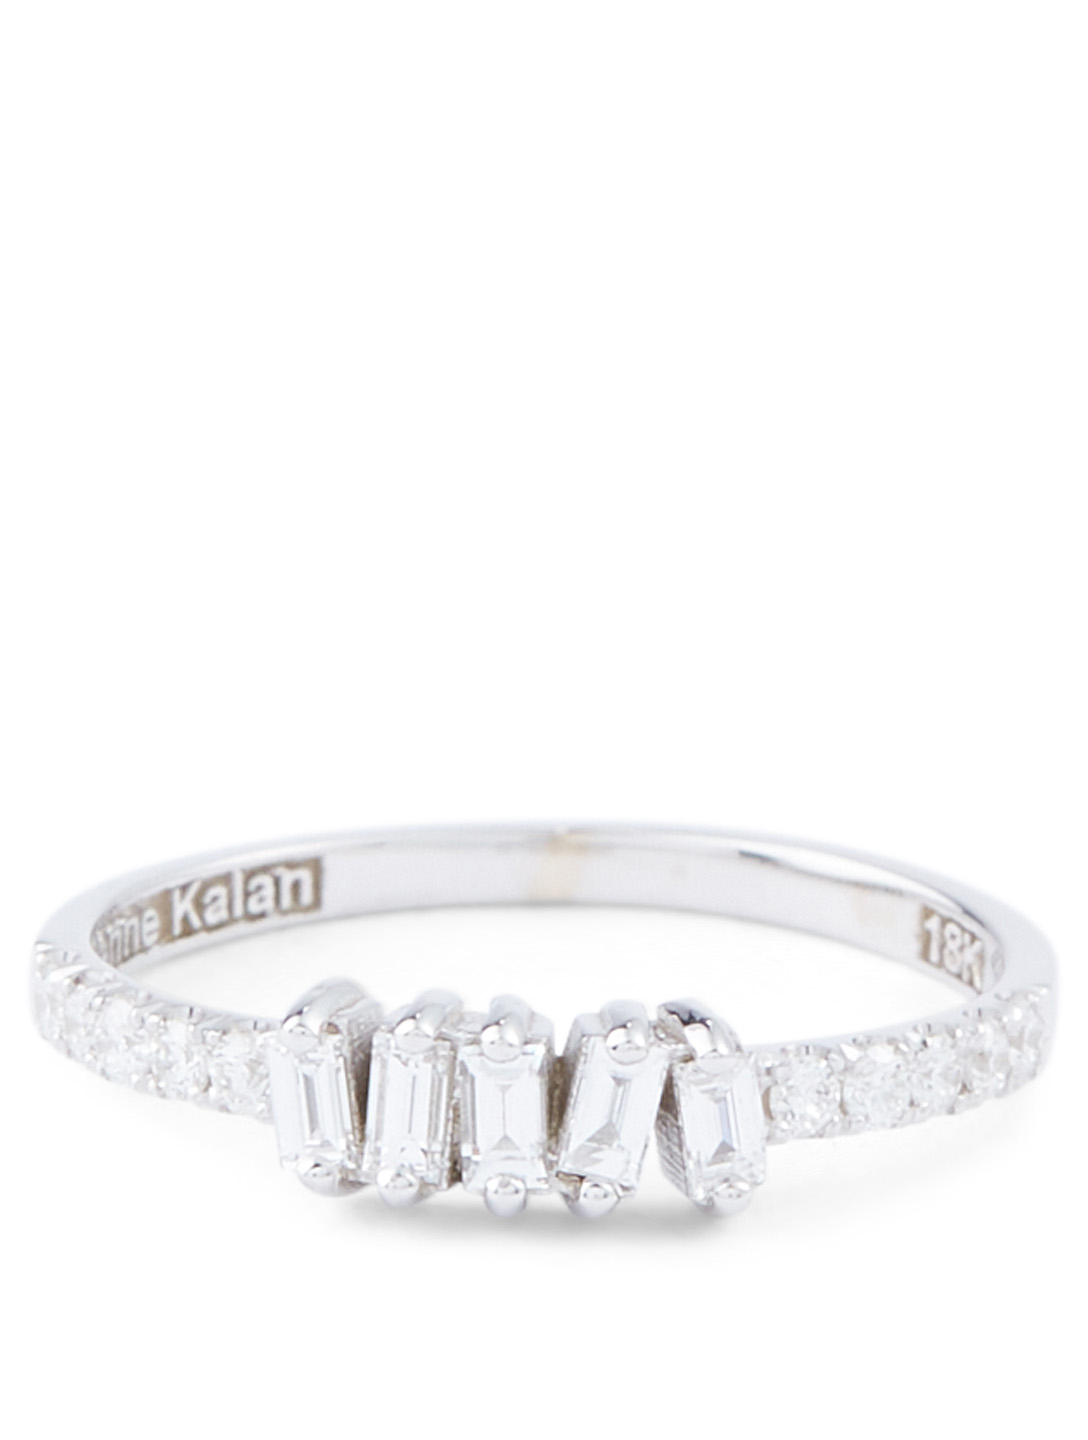 SUZANNE KALAN Fireworks 18K White Gold Ring With Diamonds Women's Silver